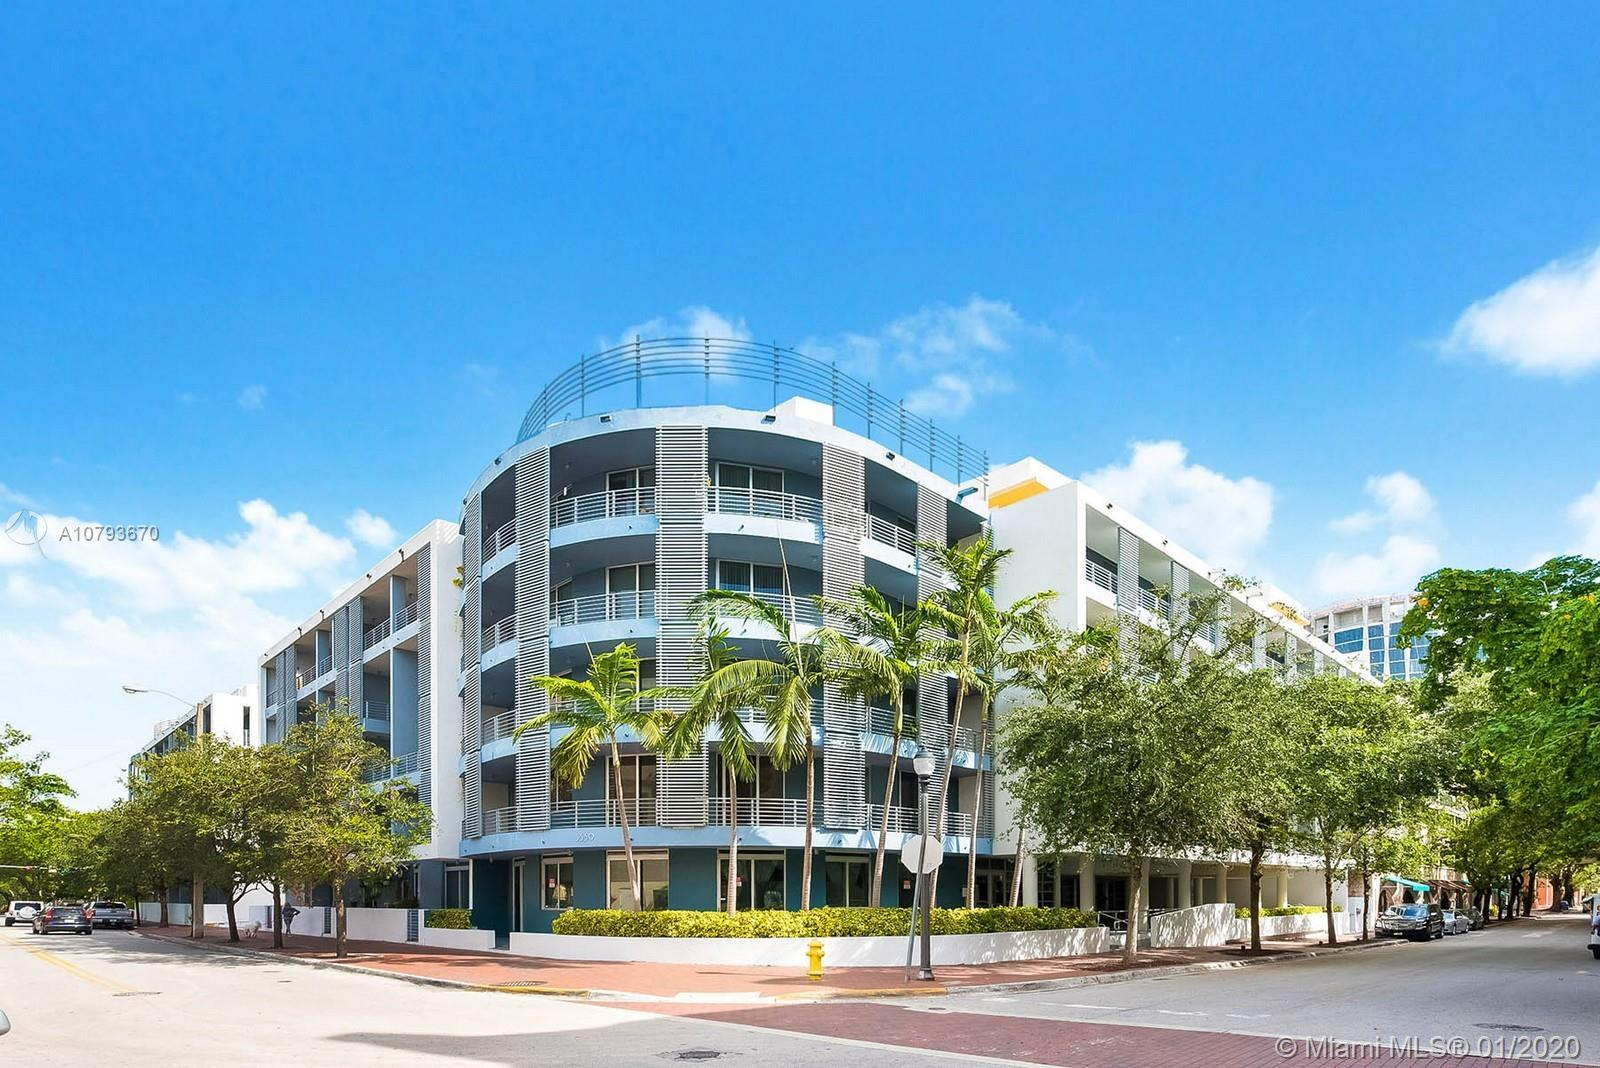 Private Penthouse for lease or for purchase in the Lofts at Mayfair and ready for immediate occupanc